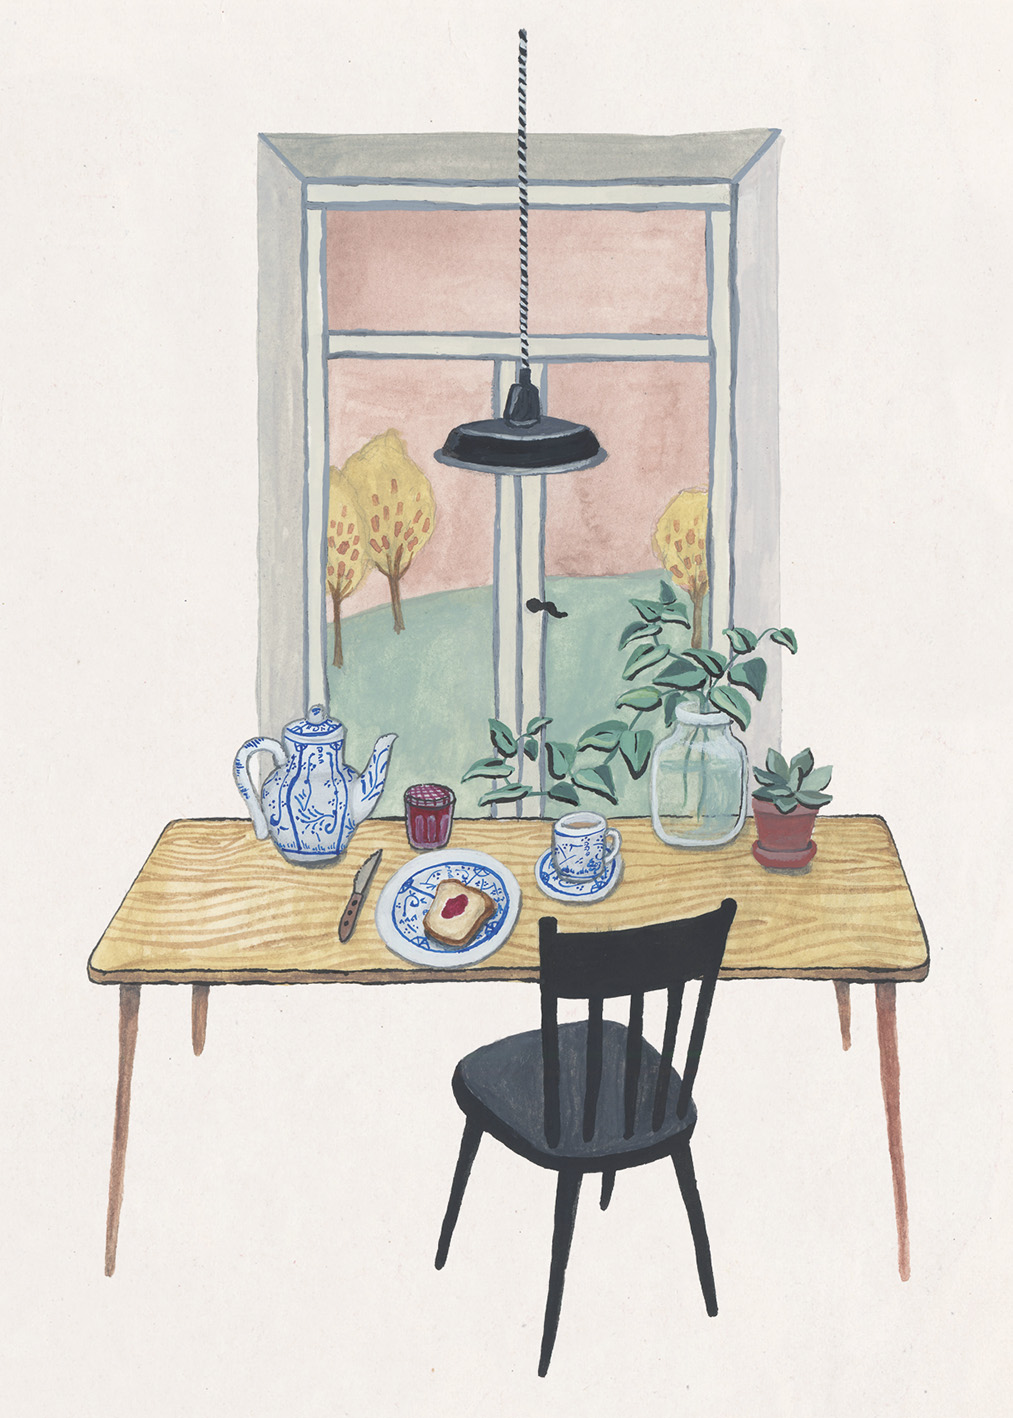 Sl01-Breakfast table.jpg